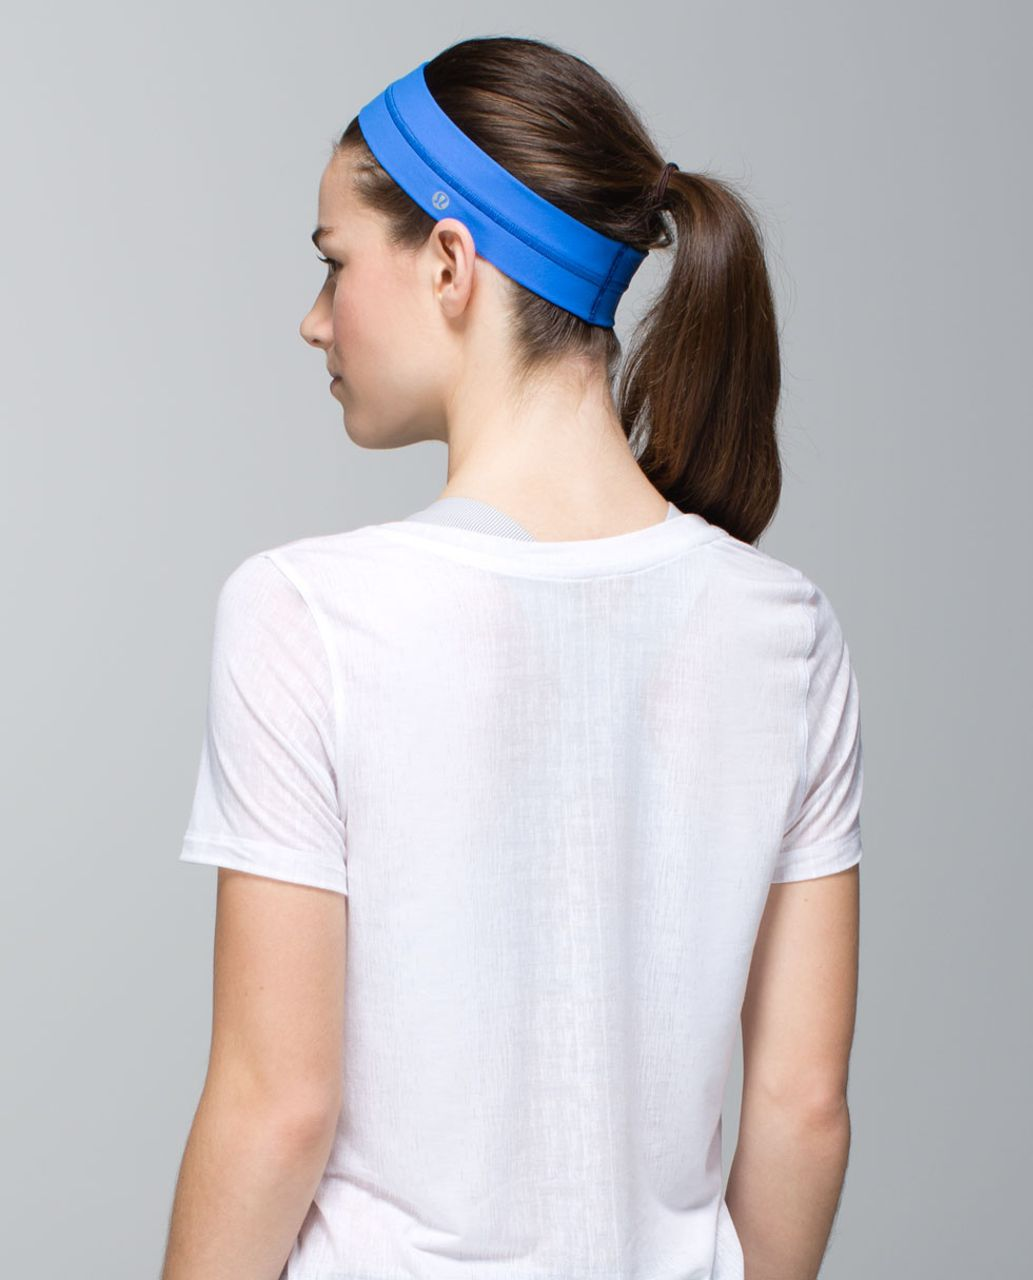 Lululemon Fly Away Tamer Headband - Pipe Dream Blue